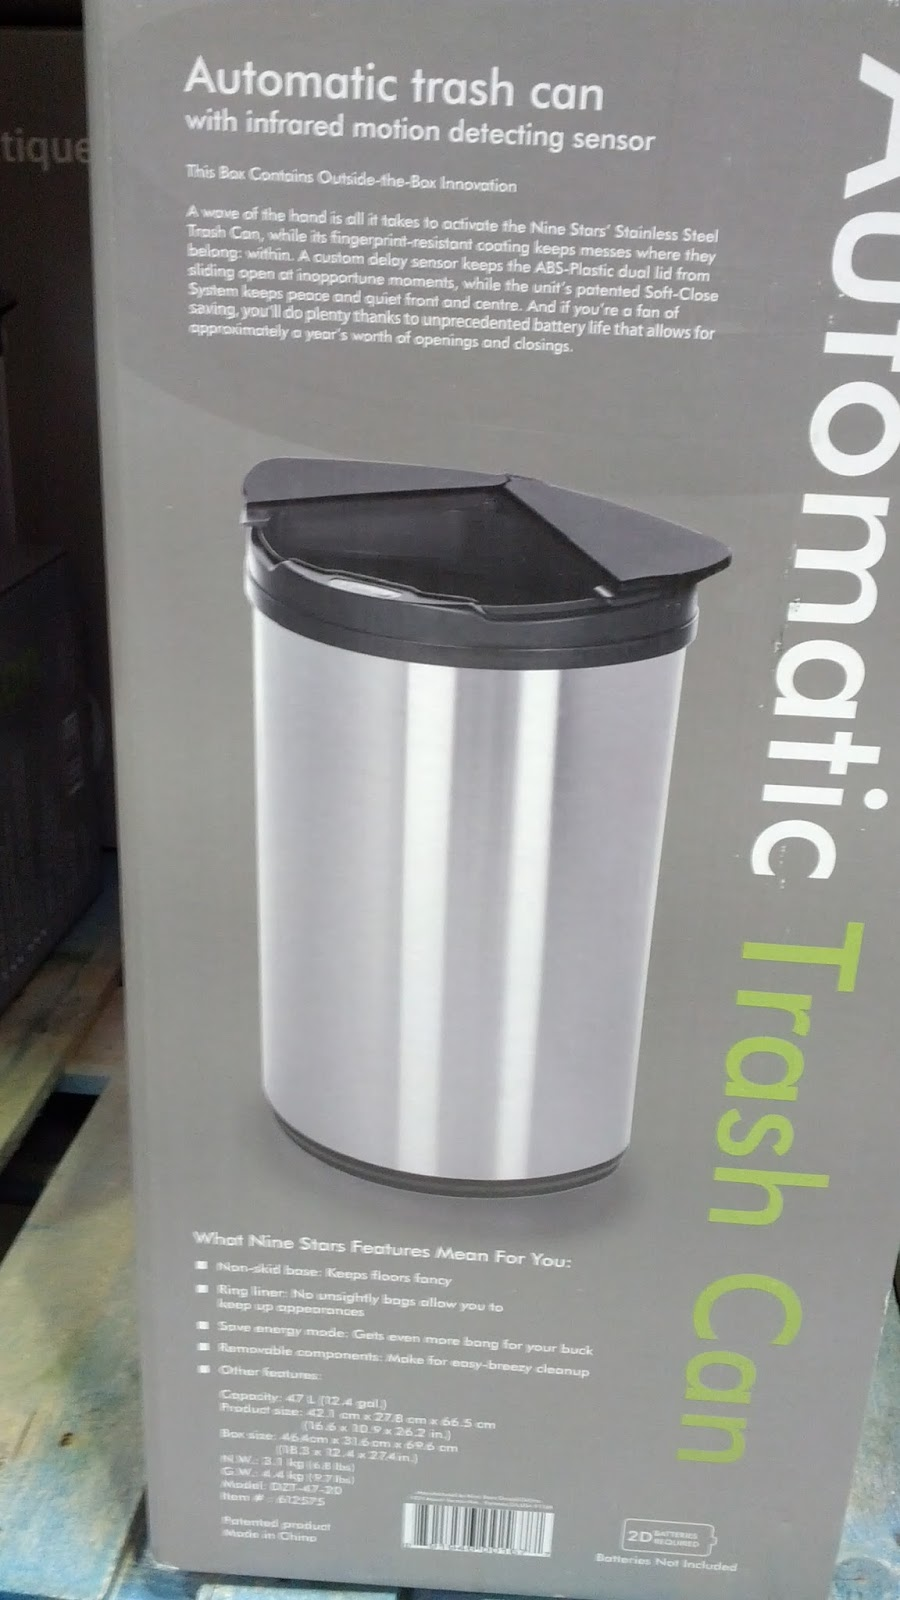 Nine Stars Automatic Stainless Steel Trash Can Costco